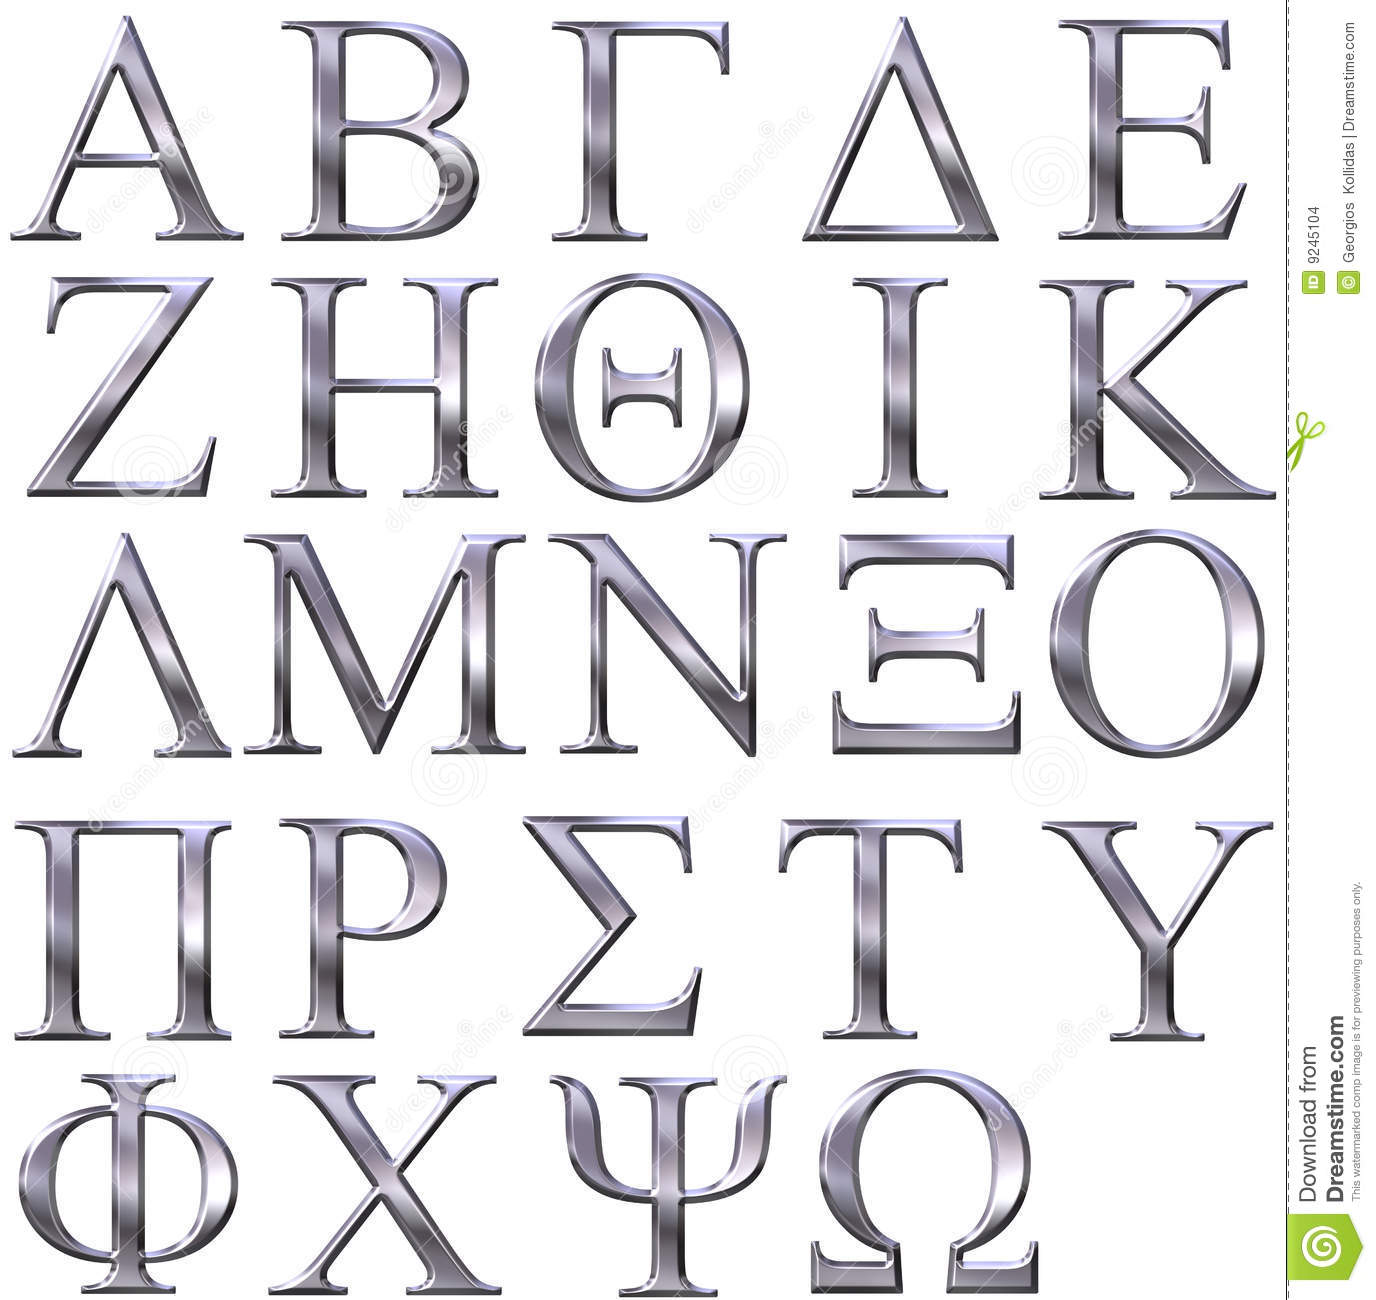 What Are The Letters Of The Alphabet In Greek